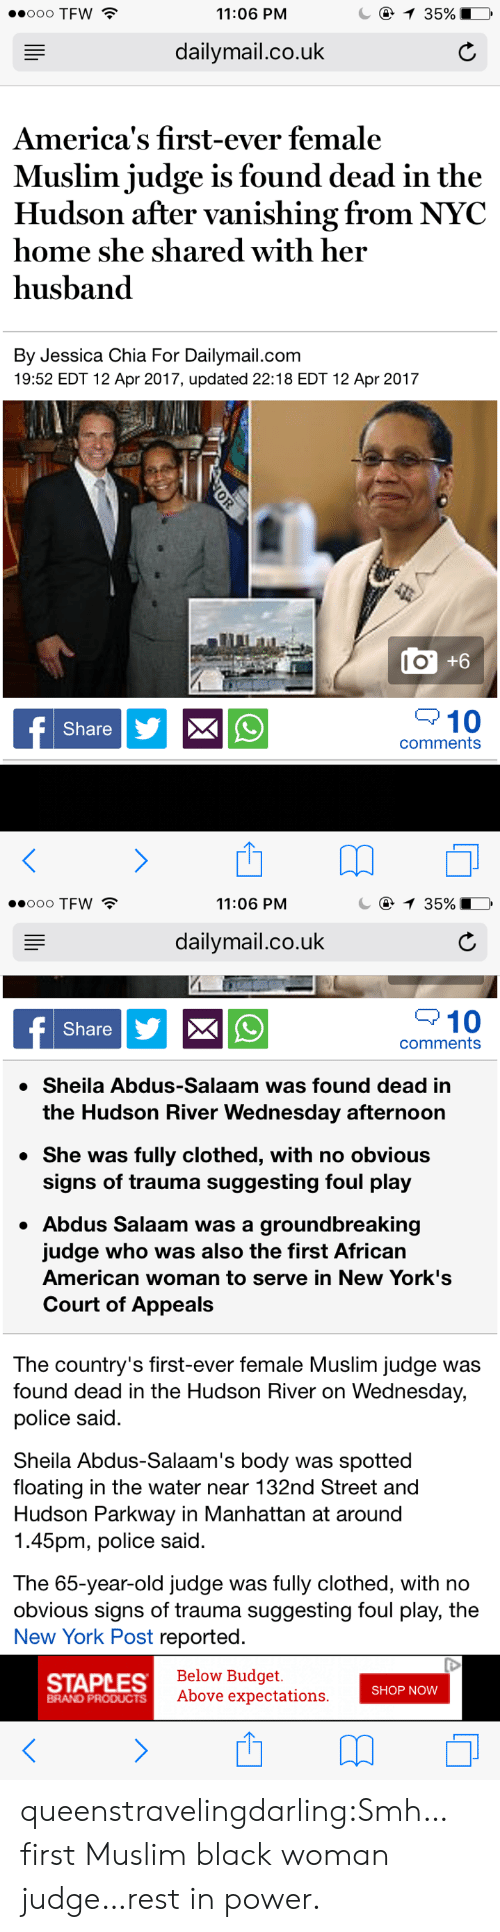 Vanishing: 11:06 PNM  dailymail.co.uk  America's first-ever female  Muslim judge is found dead in the  Hudson after vanishing from NYC  home she shared with her  husband  By Jessica Chia For Dailymail.com  19:52 EDT 12 Apr 2017, updated 22:18 EDT 12 Apr 2017  l O  Share  10  comments   ooo TFW  11:06 PNM  dailymail.co.uk  10  comments  Share  » Sheila Abdus-Salaam was found dead in  the Hudson River Wednesday afternoon  » She was fully clothed, with no obvious  signs of trauma suggesting foul play  Abdus Salaam was a groundbreaking  judge who was also the first African  American woman to serve in New York's  Court of Appeals  The country's first-ever female Muslim judge was  found dead in the Hudson River on Wednesday,  police said  Sheila Abdus-Salaam's body was spotted  floating in the water near 132nd Street and  Hudson Parkway in Manhattan at around  1.45pm, police said  The 65-year-old judge was fully clothed, with no  obvious signs of trauma suggesting foul play, the  New York Post reported  STAPLES  Below Budget  Above expectations  SHOP NOW  BRAND PRODUCTS queenstravelingdarling:Smh…first Muslim black woman judge…rest in power.